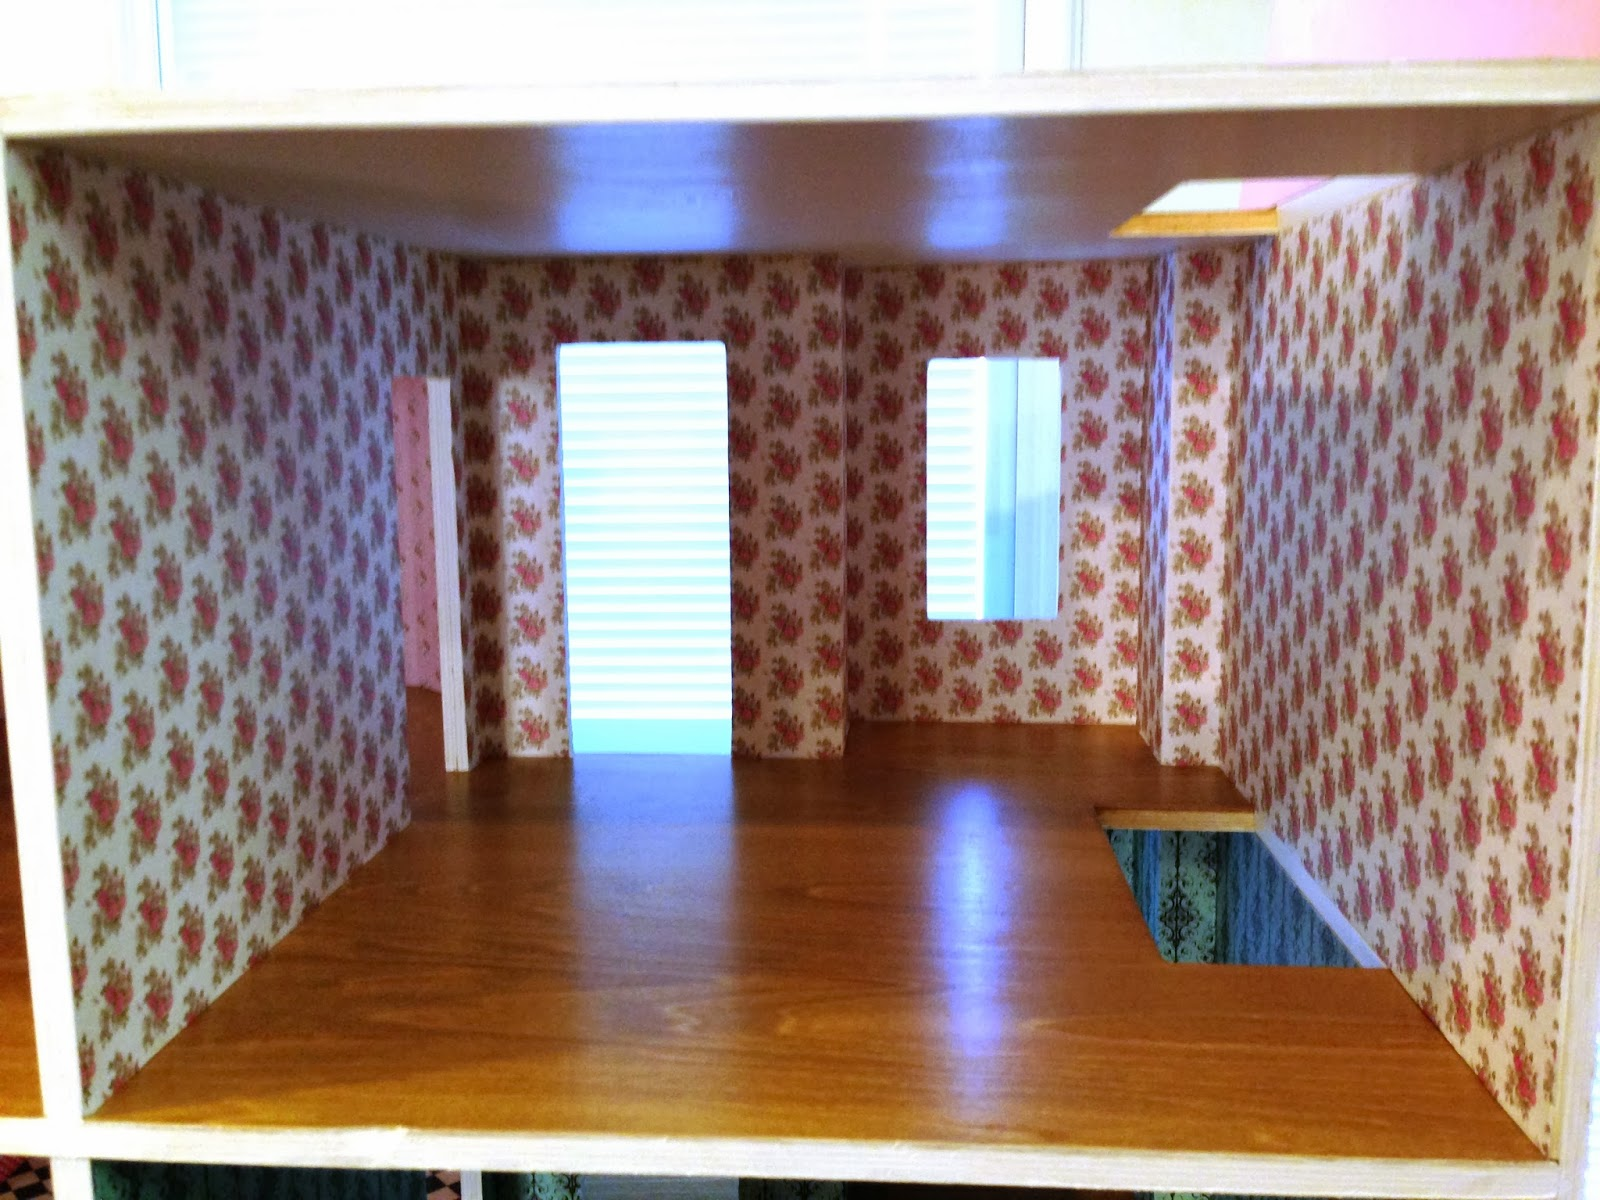 Scrapbook paper dollhouse wallpaper - This Bedroom Has A Pink Floral Print On The Walls Which Was Also A Dollhouse Wallpaper From Hobby Lobby The Floors In These Two Second Floor Rooms Have